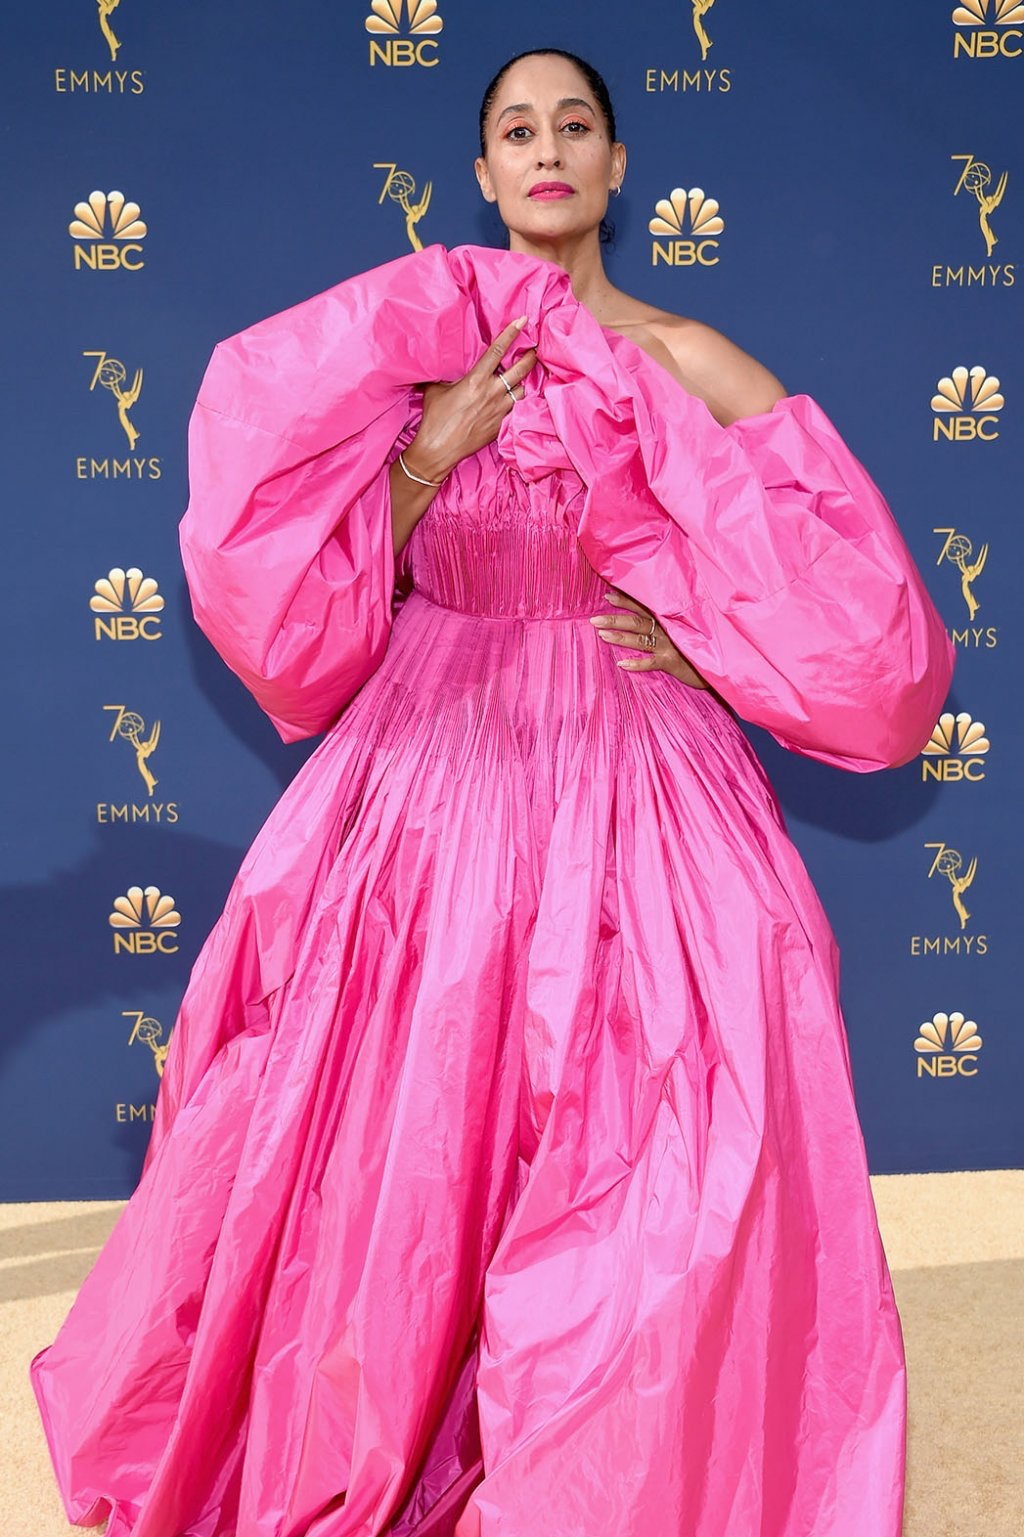 Tracee Ellis Ross in Valentino Haute Couture, 70th Annual Primetime Emmy Awards, Betty White, Emmys 2018, Fashion, Featured, Glenn Weiss, Hannah Gadsby, highlights, Jav Svendsen, Online Exclusive, Style, The Marvellous Mrs. Maisel, top moments, We solved it, Diversity